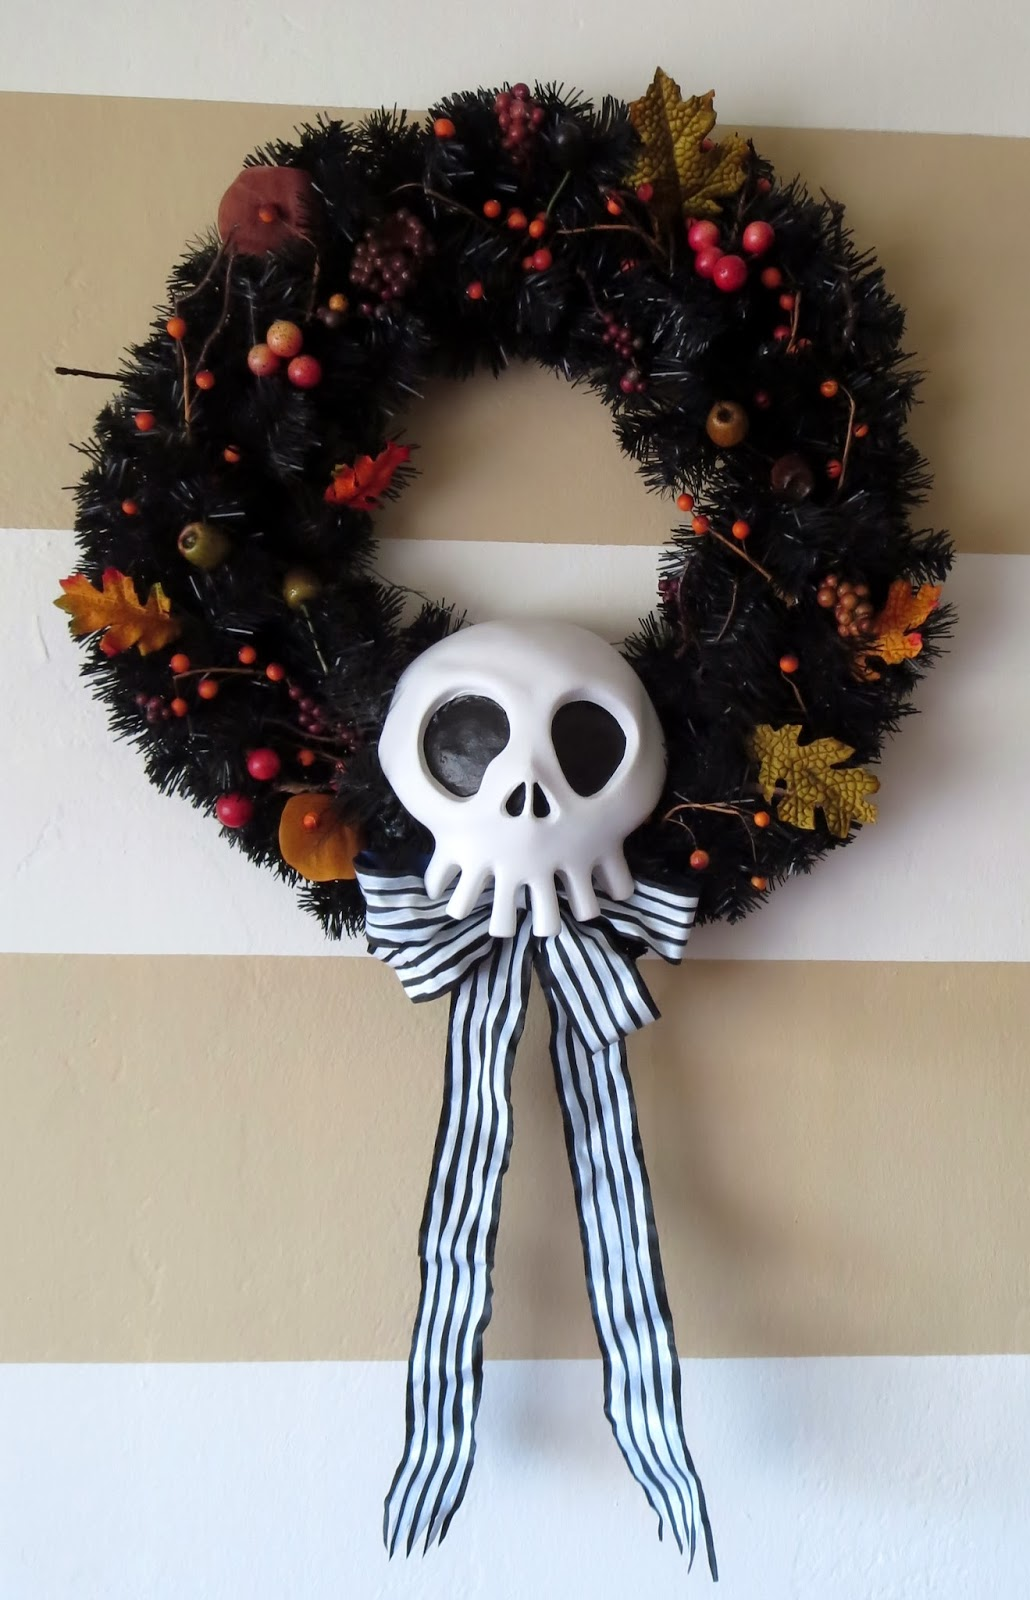 diy nightmare before christmas halloween props - Nightmare Before Christmas Halloween Decorations For Sale